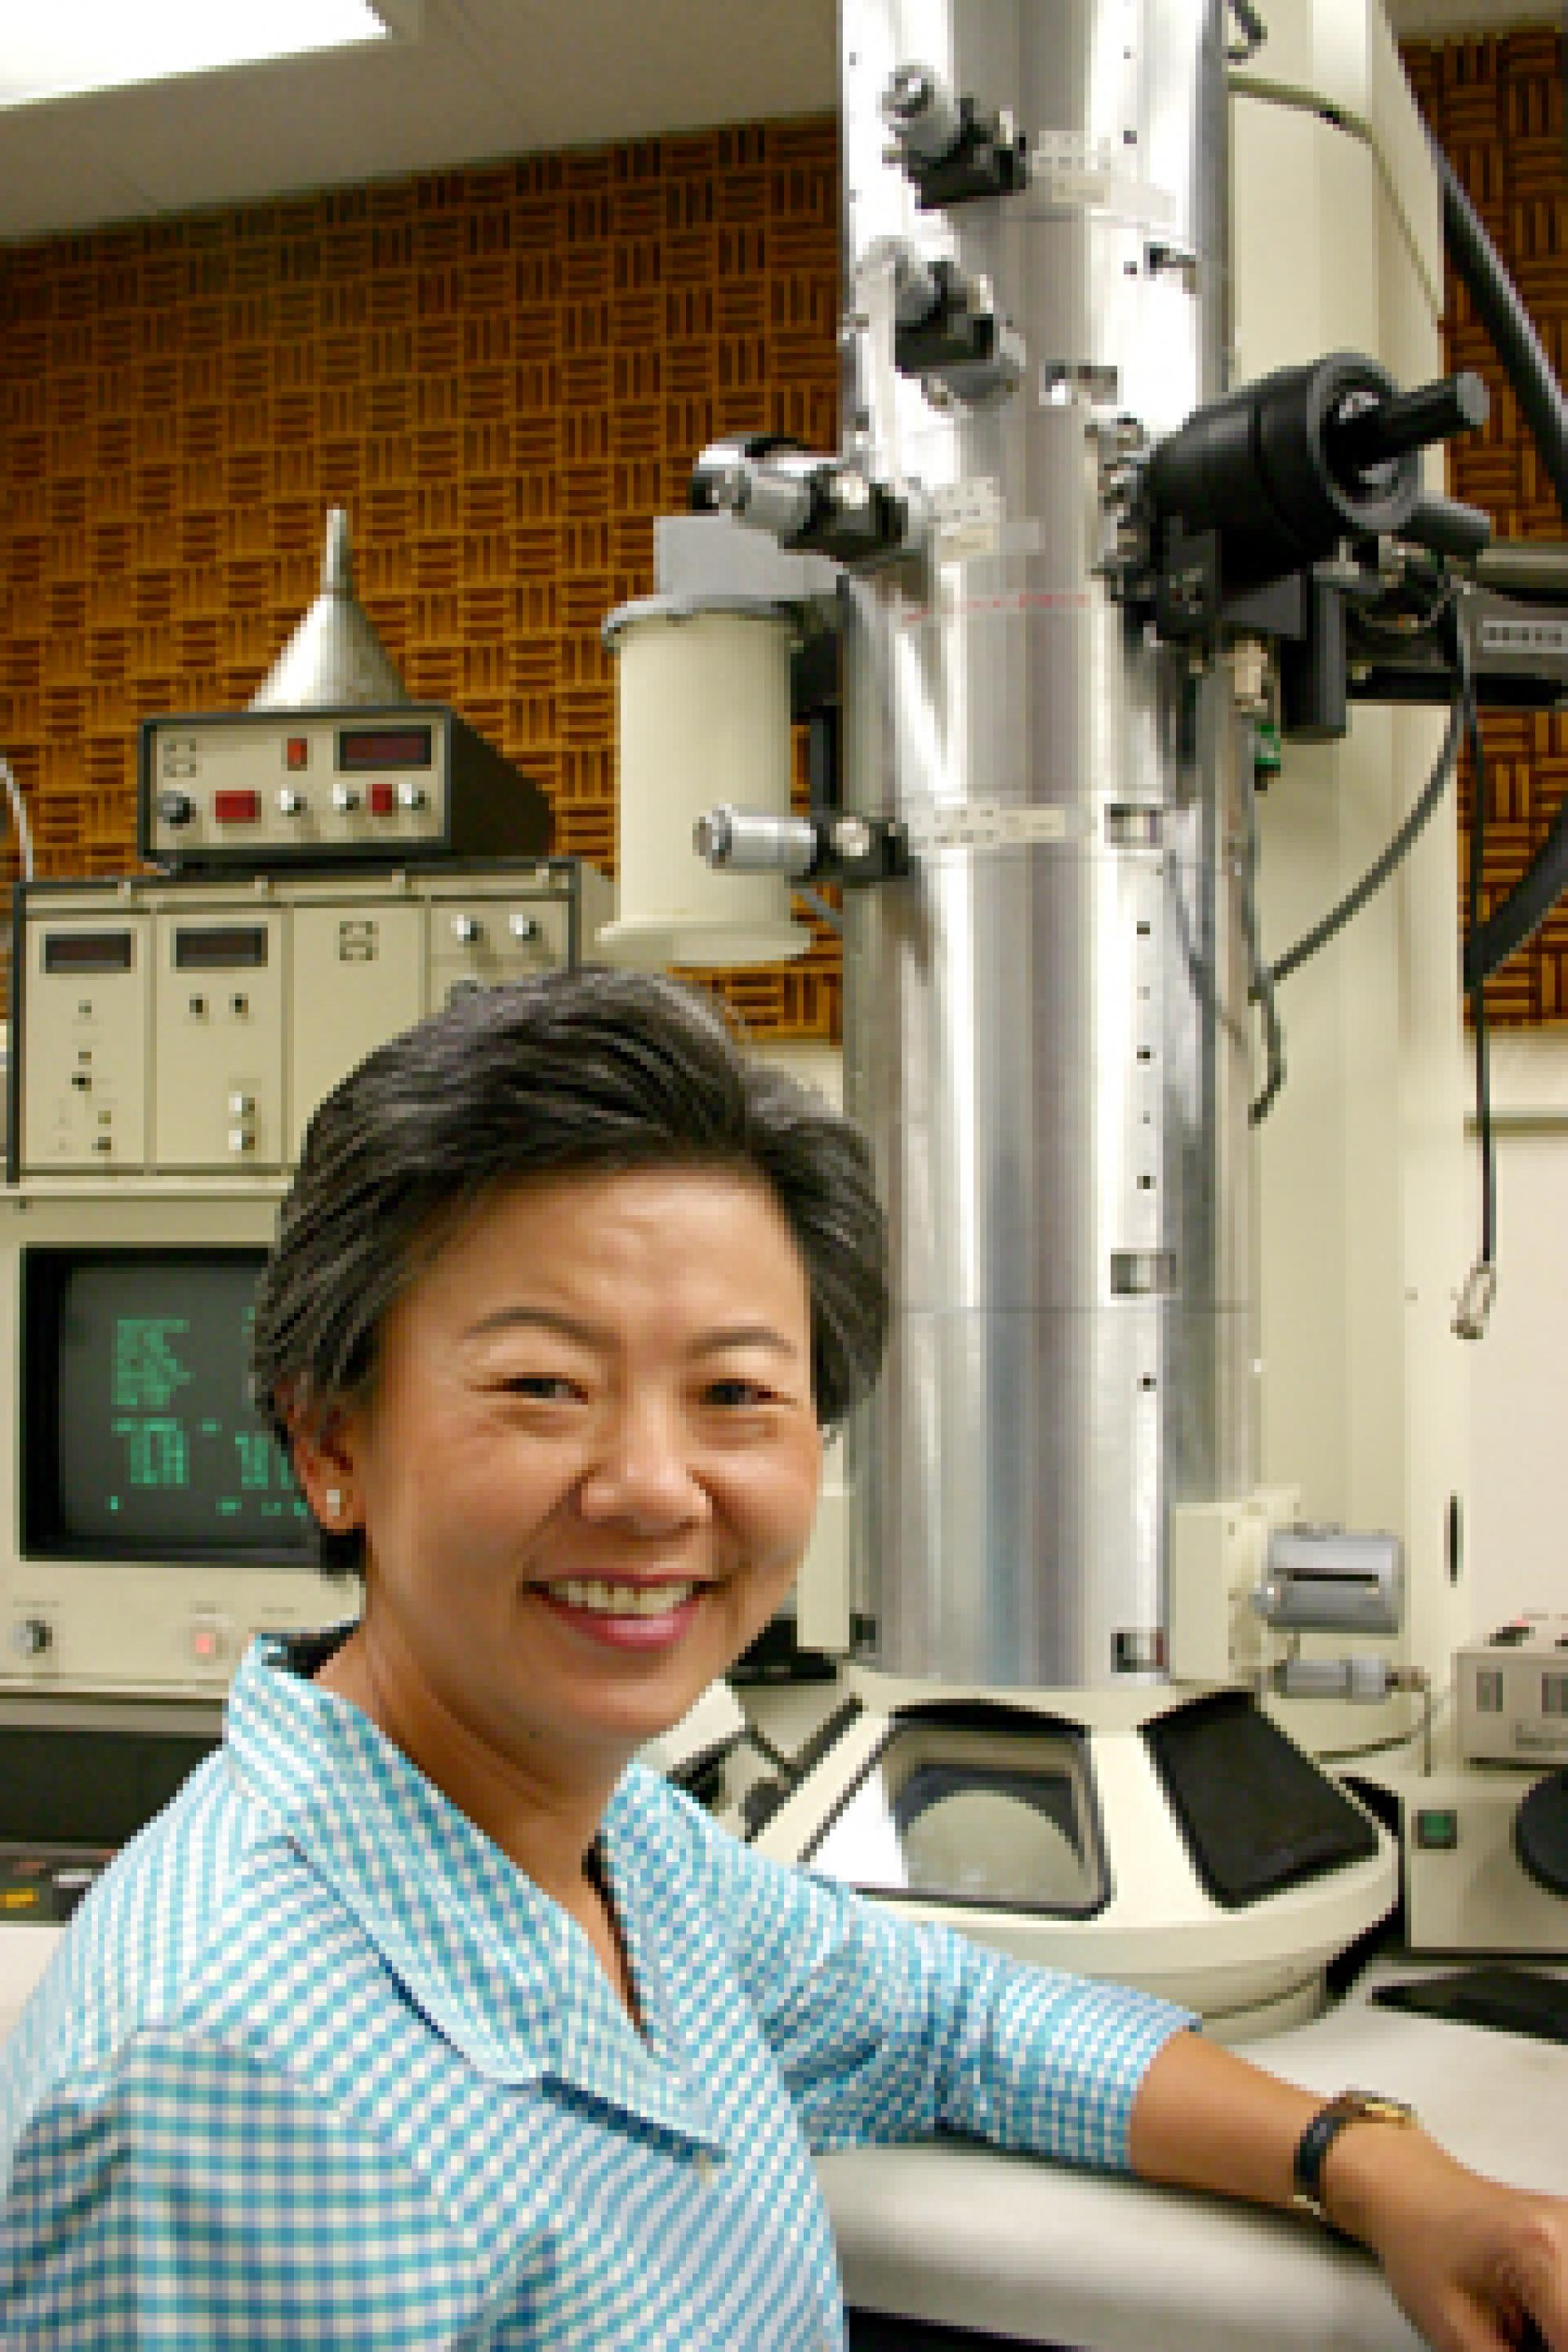 Supapan Seraphin, a professor of material science and engineering, optical sciences and biosystems engineering, mentors Thai women to help them move into the science ranks.